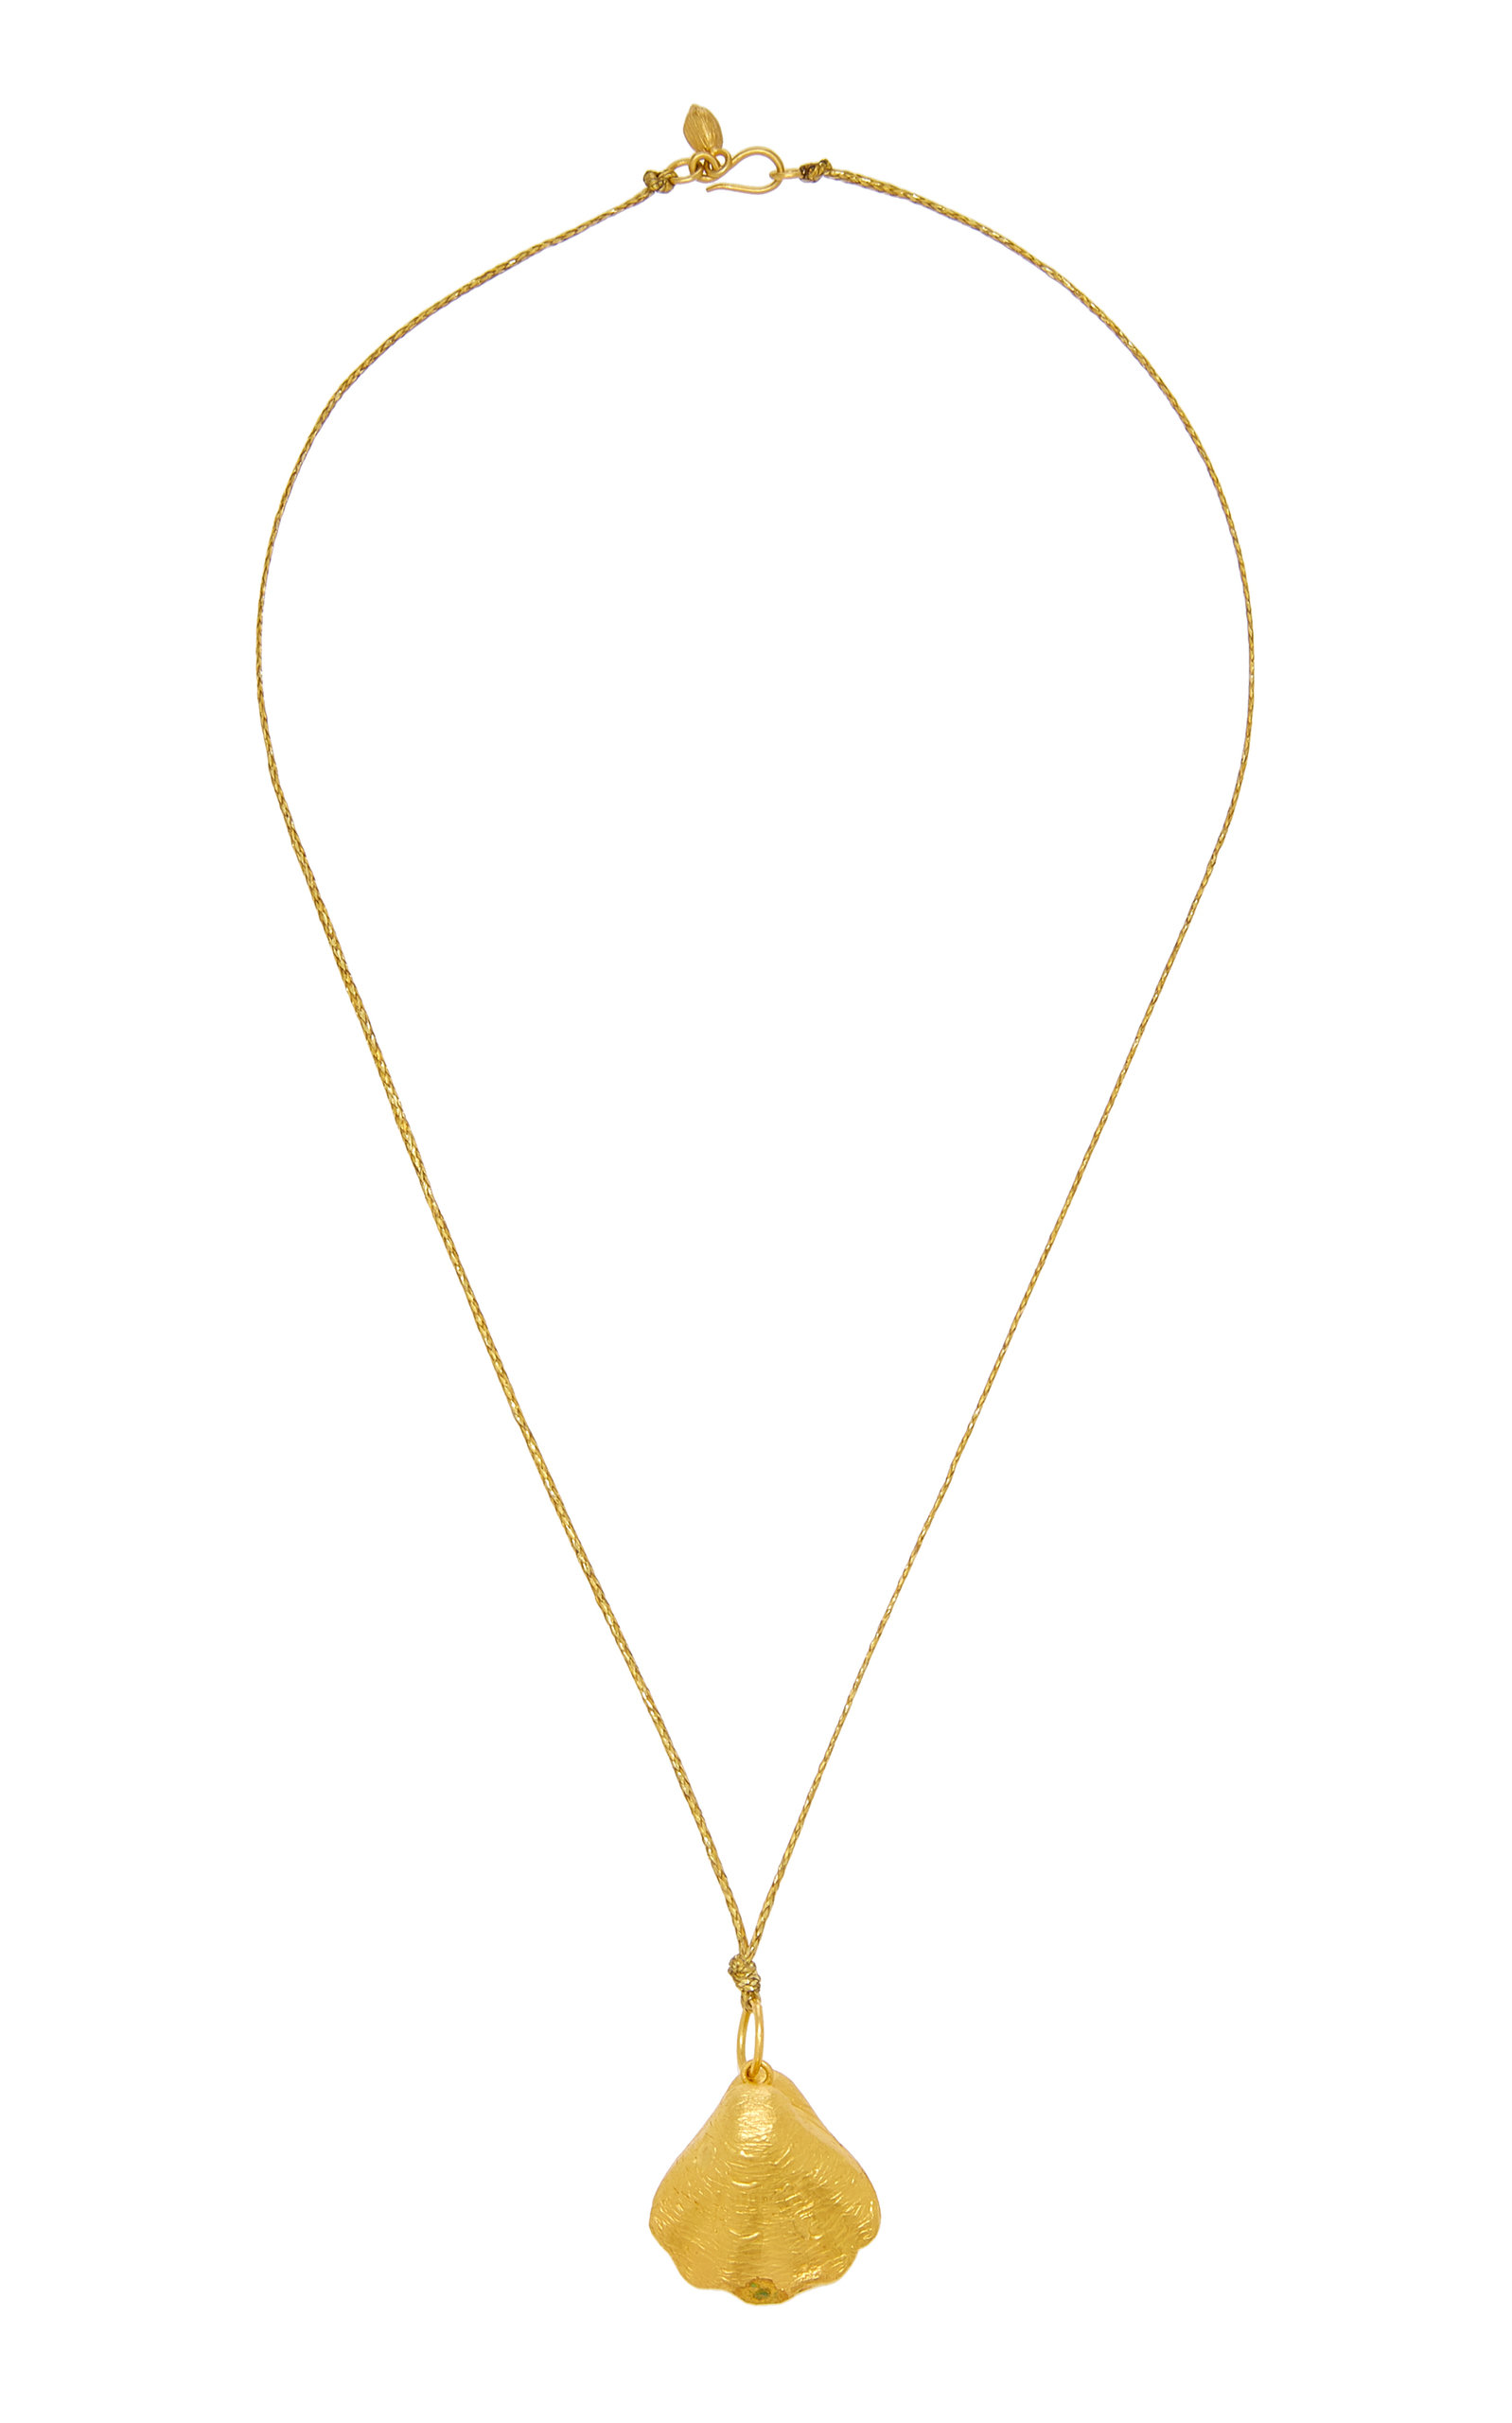 Large Oyster Pendant On Cord in 2019 Pippa small